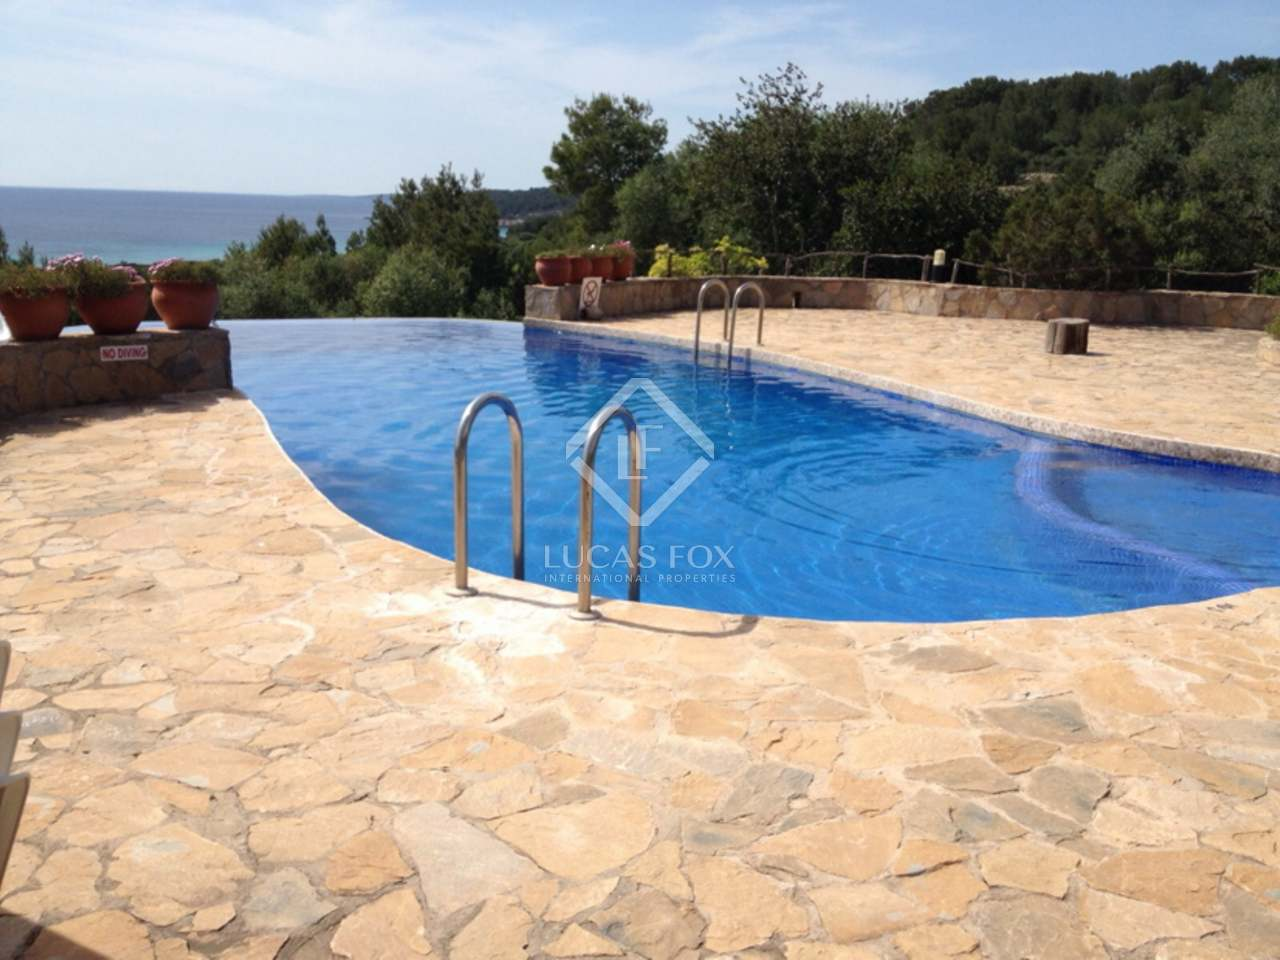 House For Sale In Santo Tomas Menorca - Incredible swimming pool cost 2000000